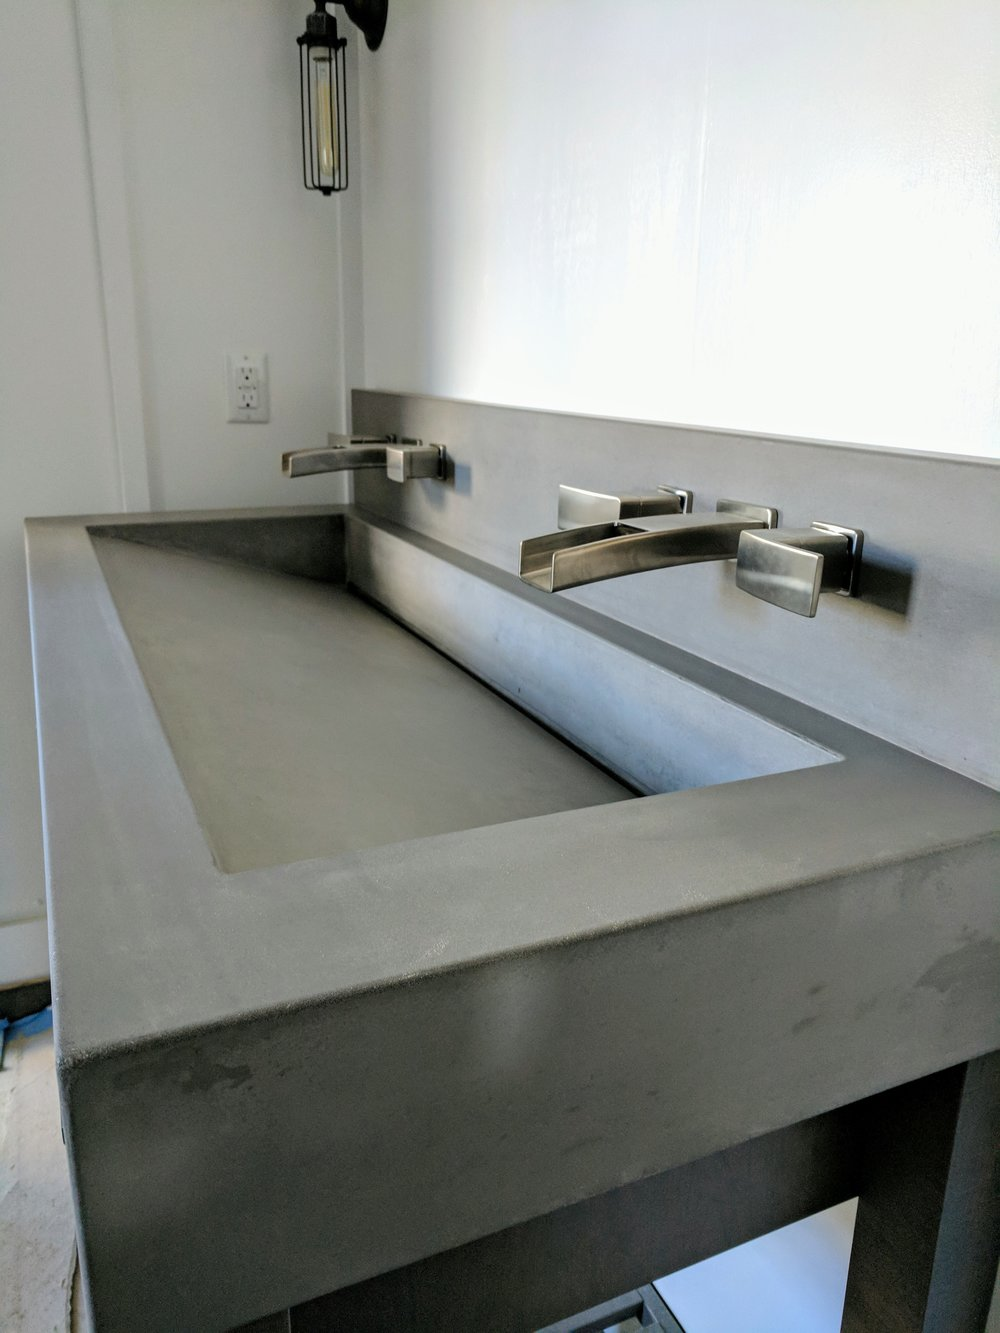 Ramp Sink w/ Slot Drain - Project with Cozy Kitchens Group